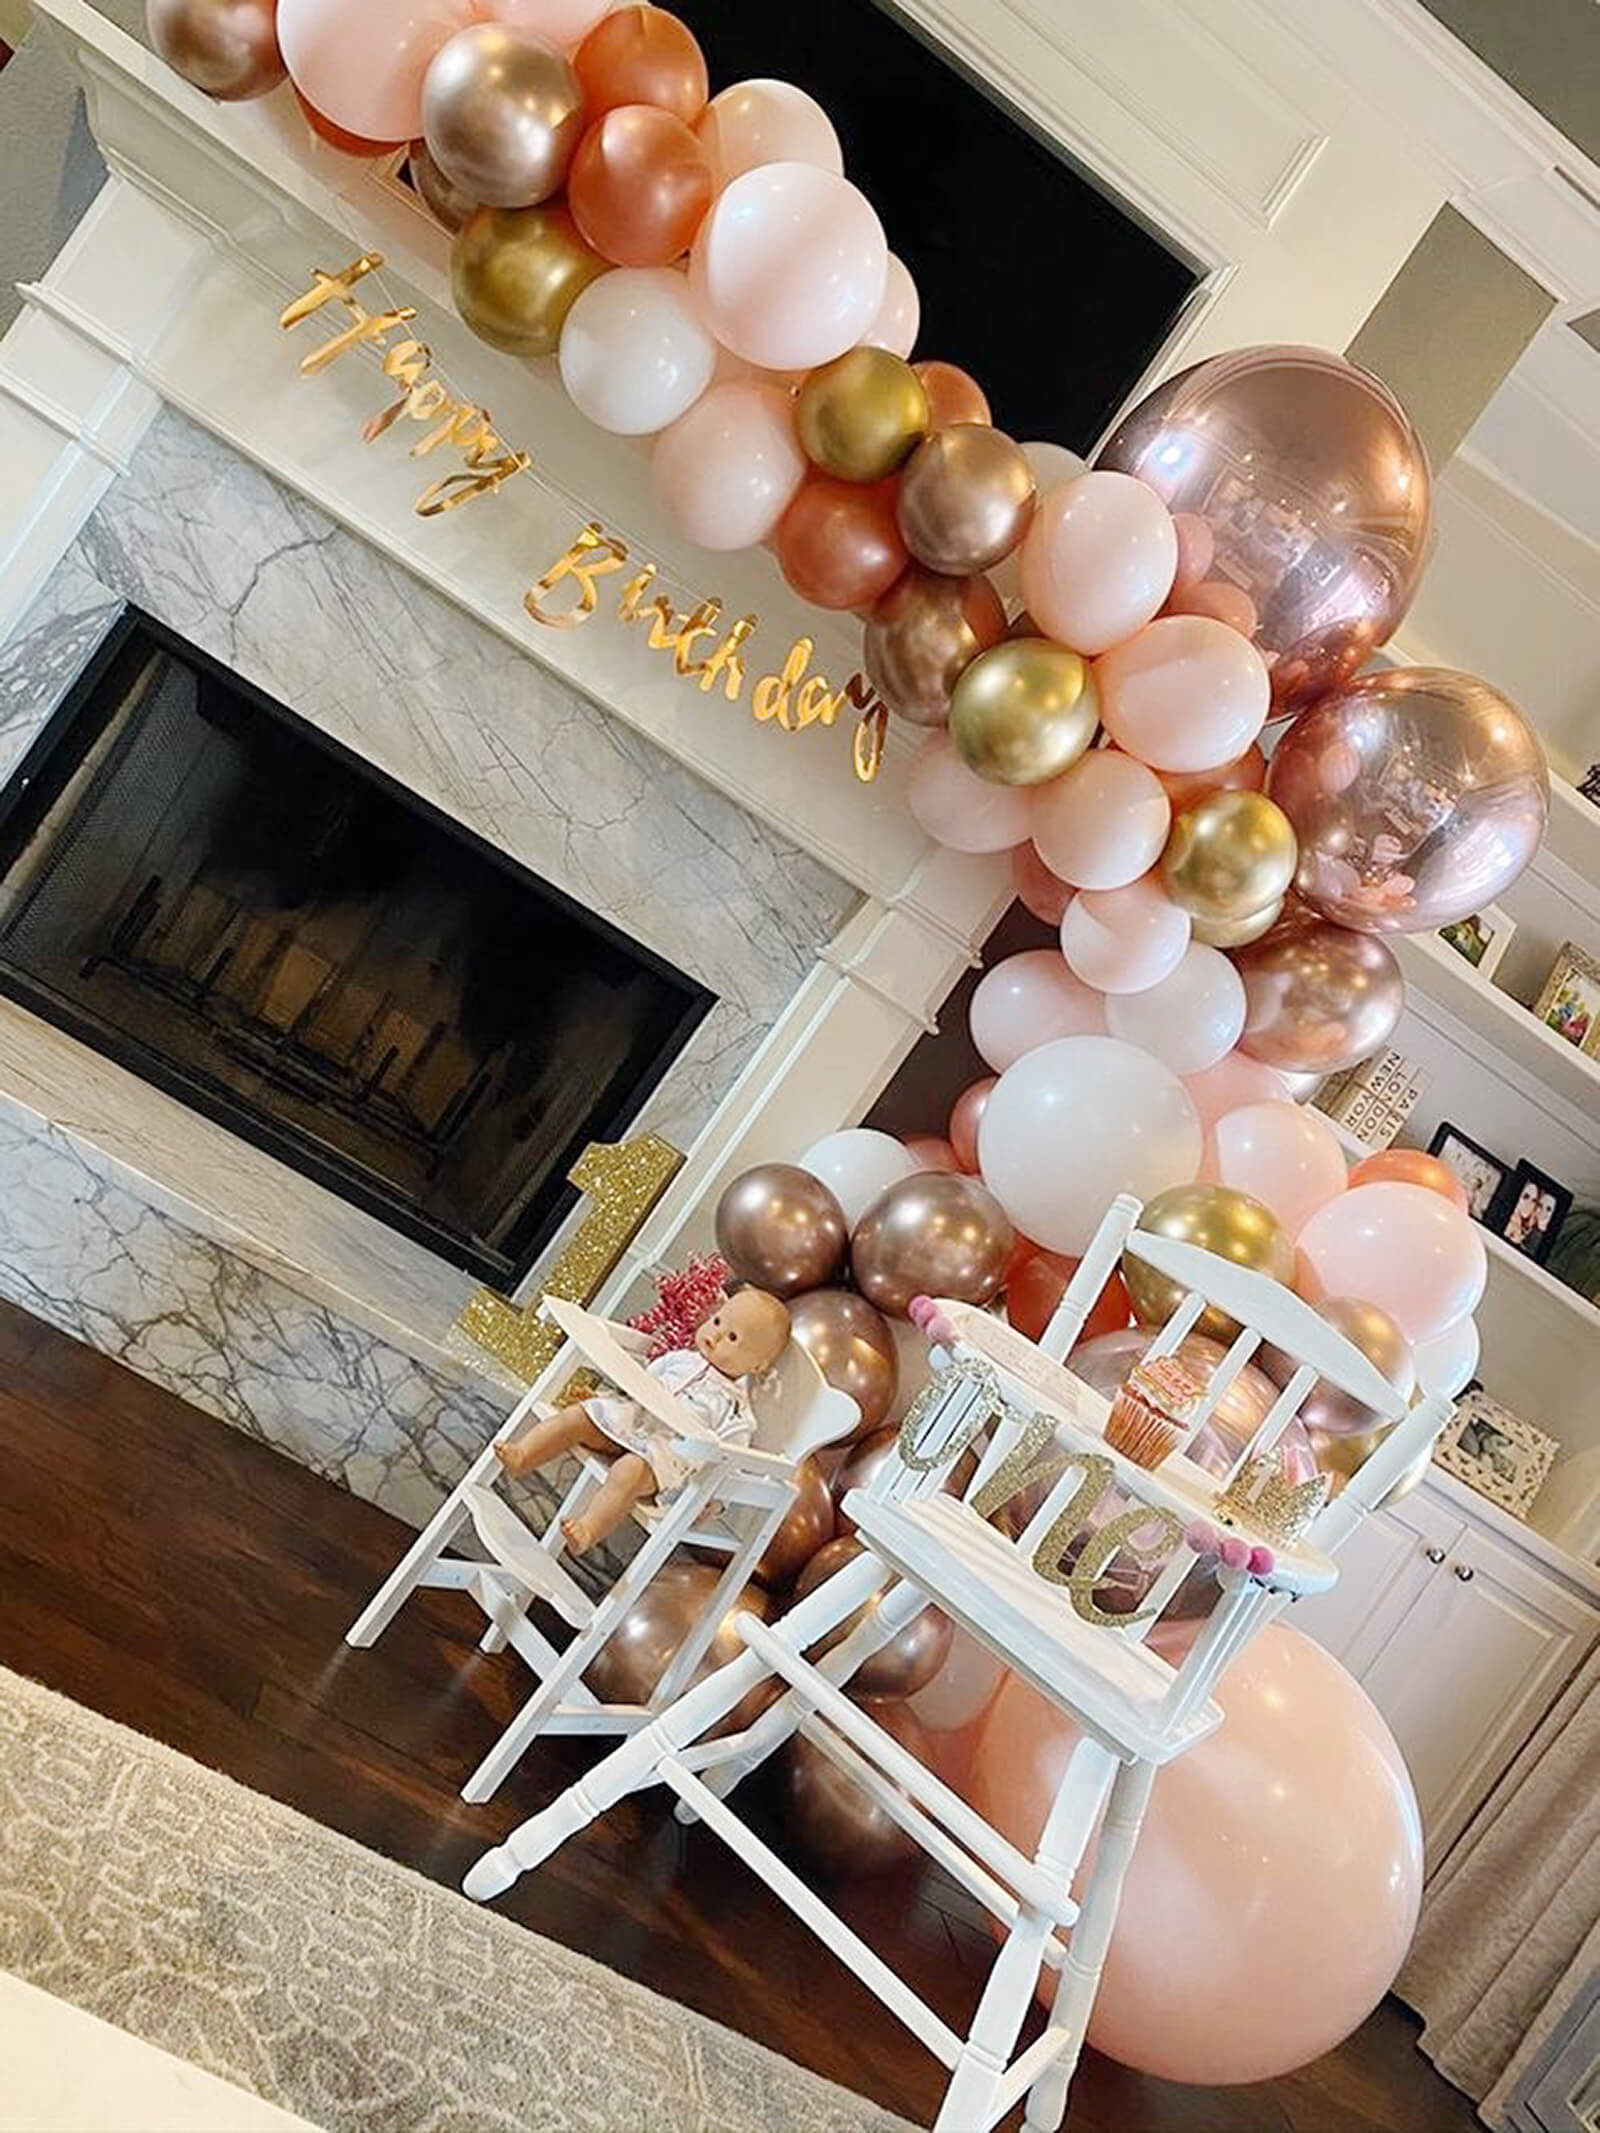 Happy Birthday baby with a beautiful mantle balloon garland hanging from Just Peachy in Little Rock, Arkansas,